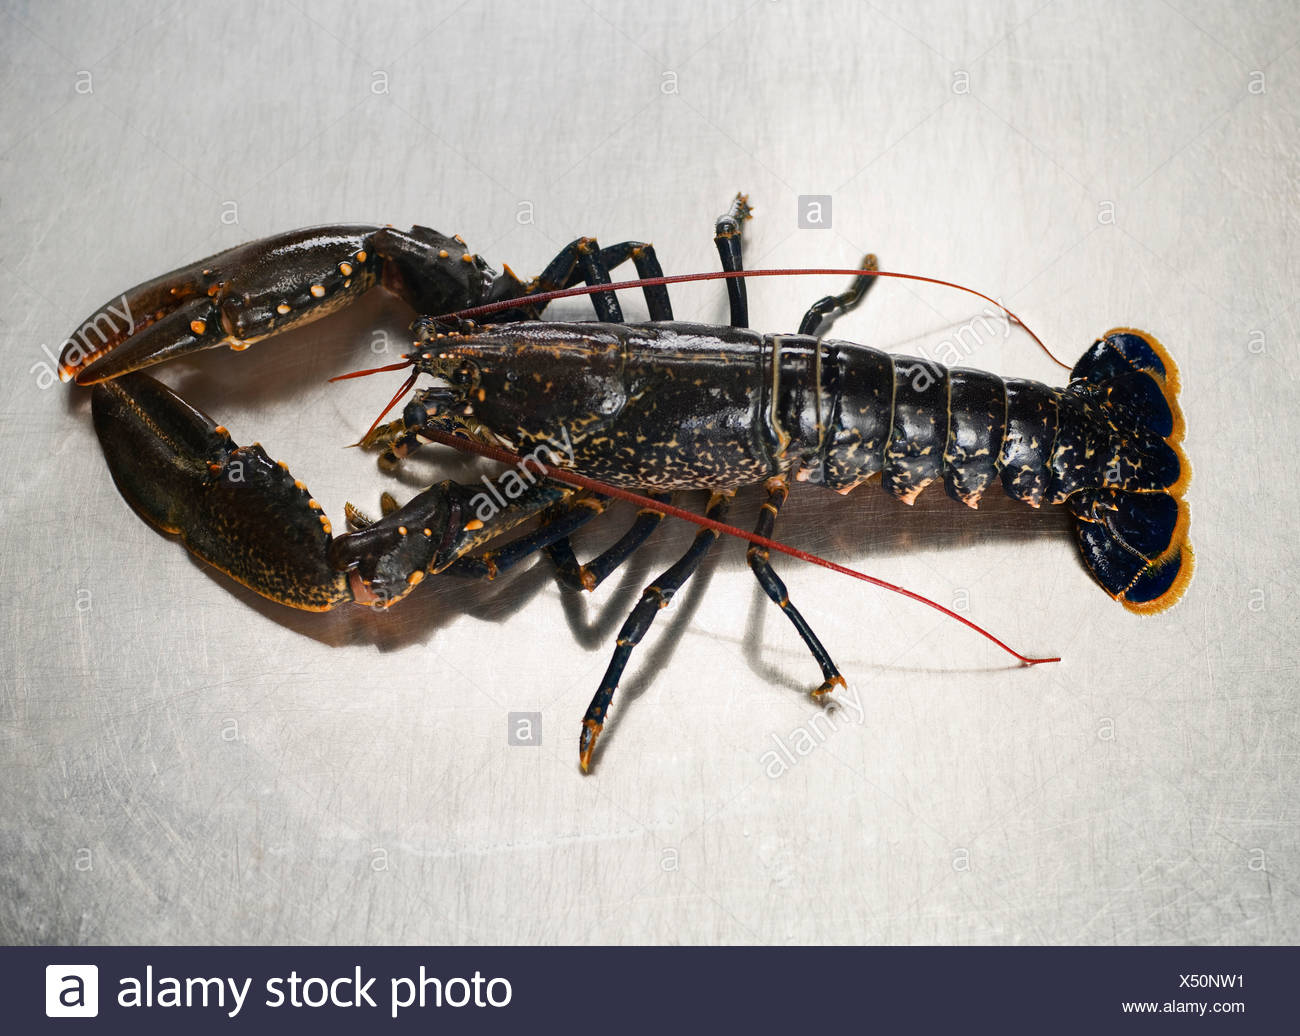 A lobster on a stainless steel surface - Stock Image